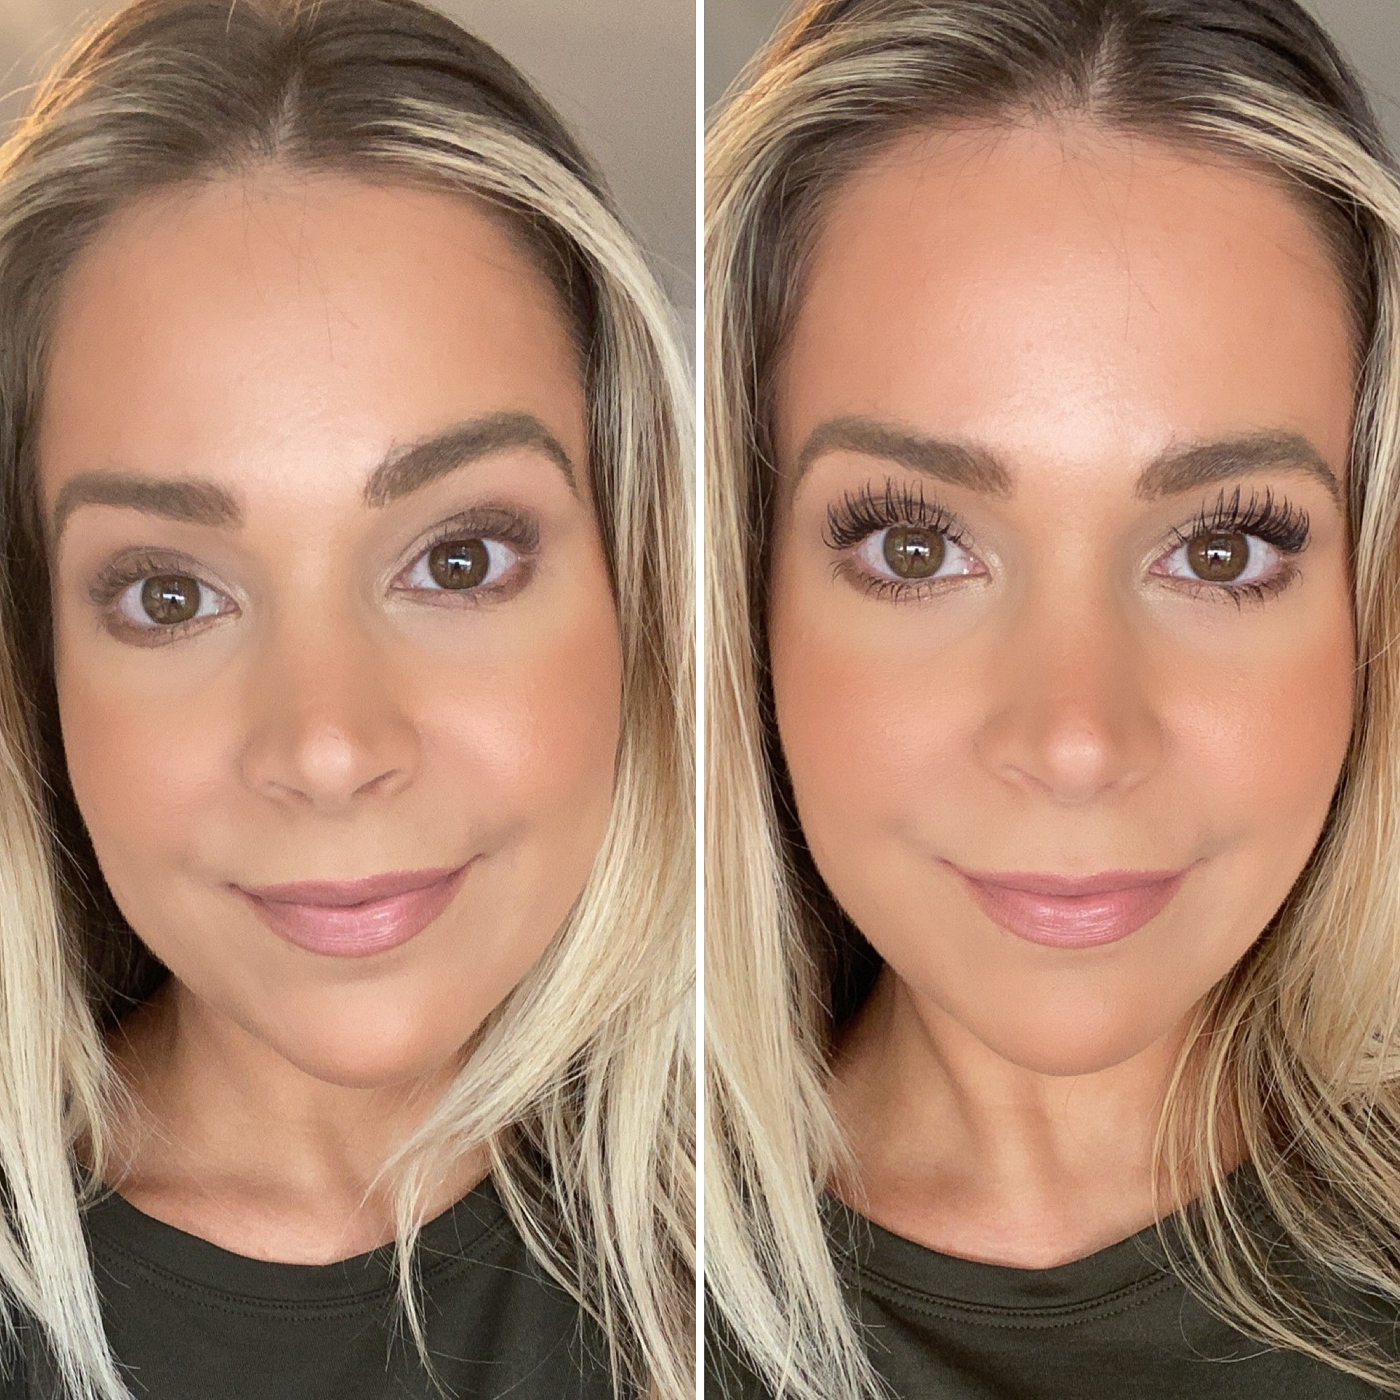 Before and After Beautycounter Think Big Mascara